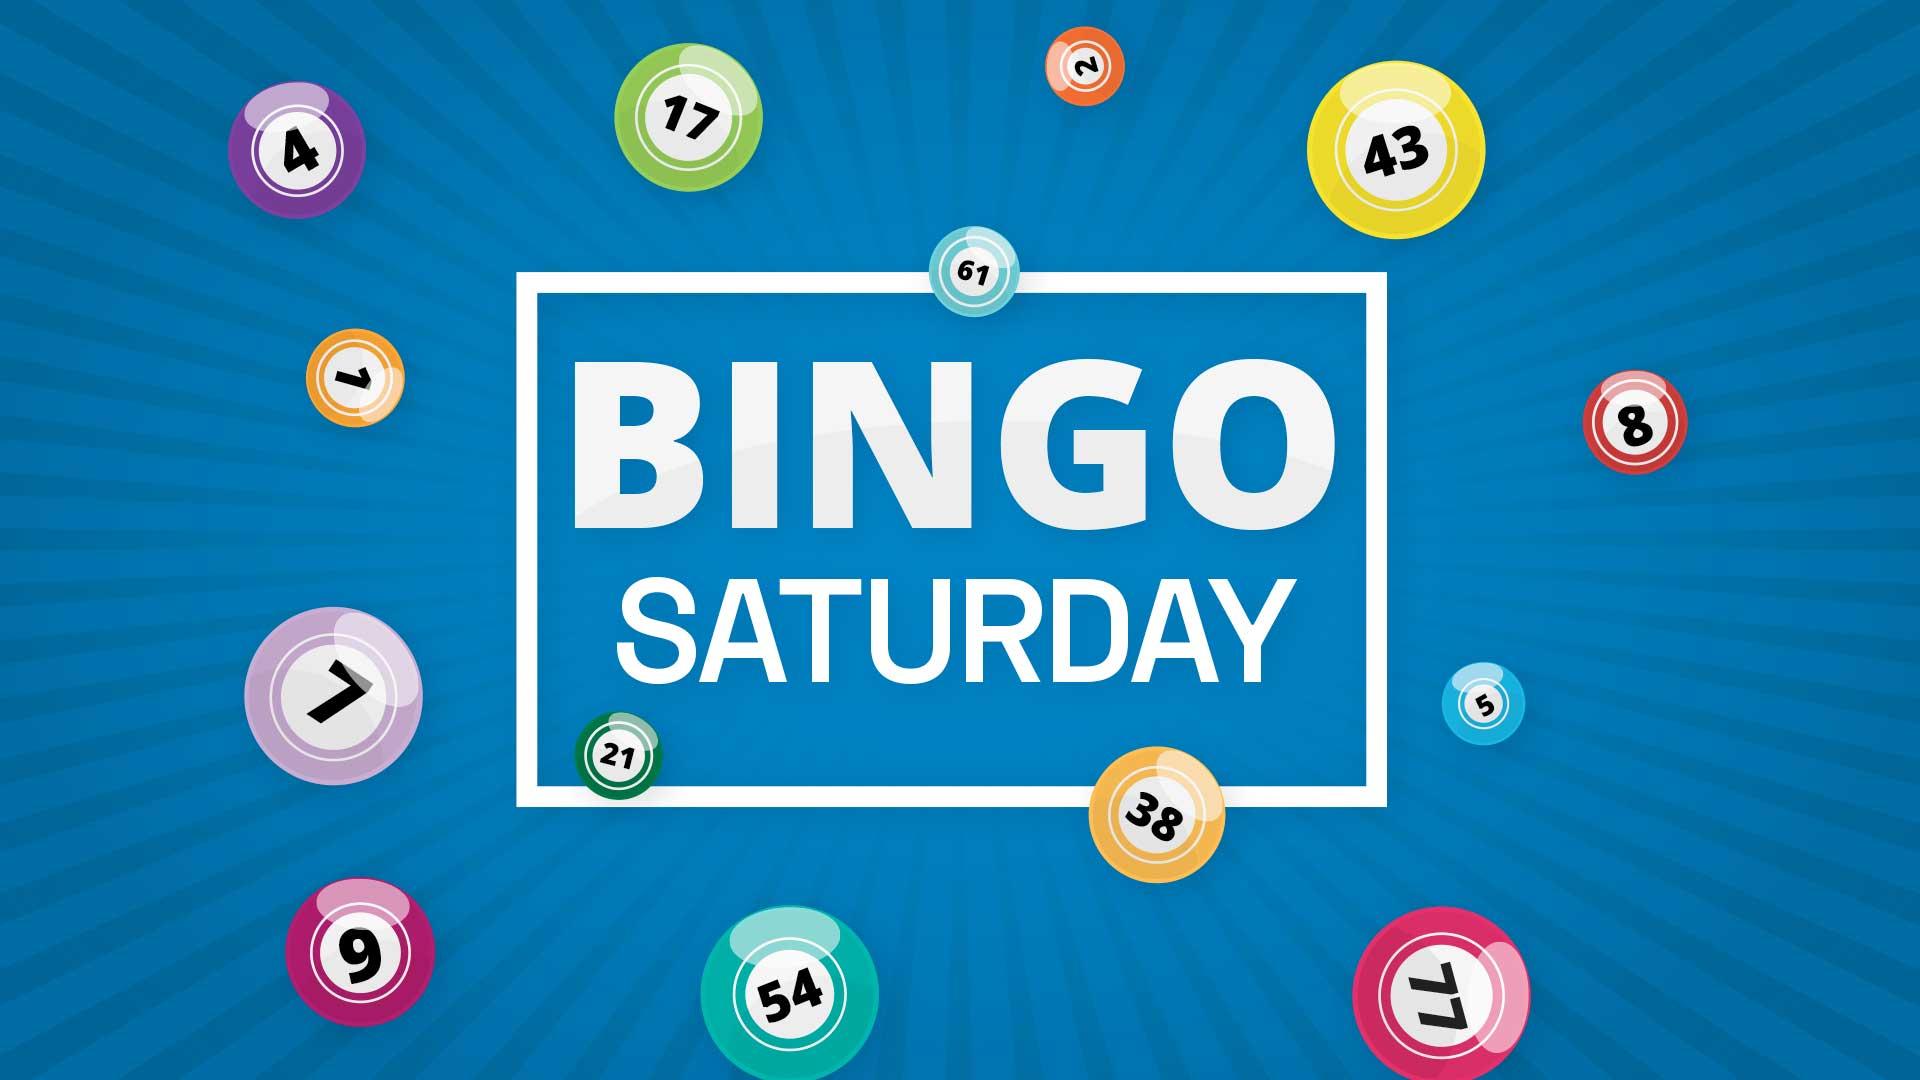 Bingo - Saturday Session